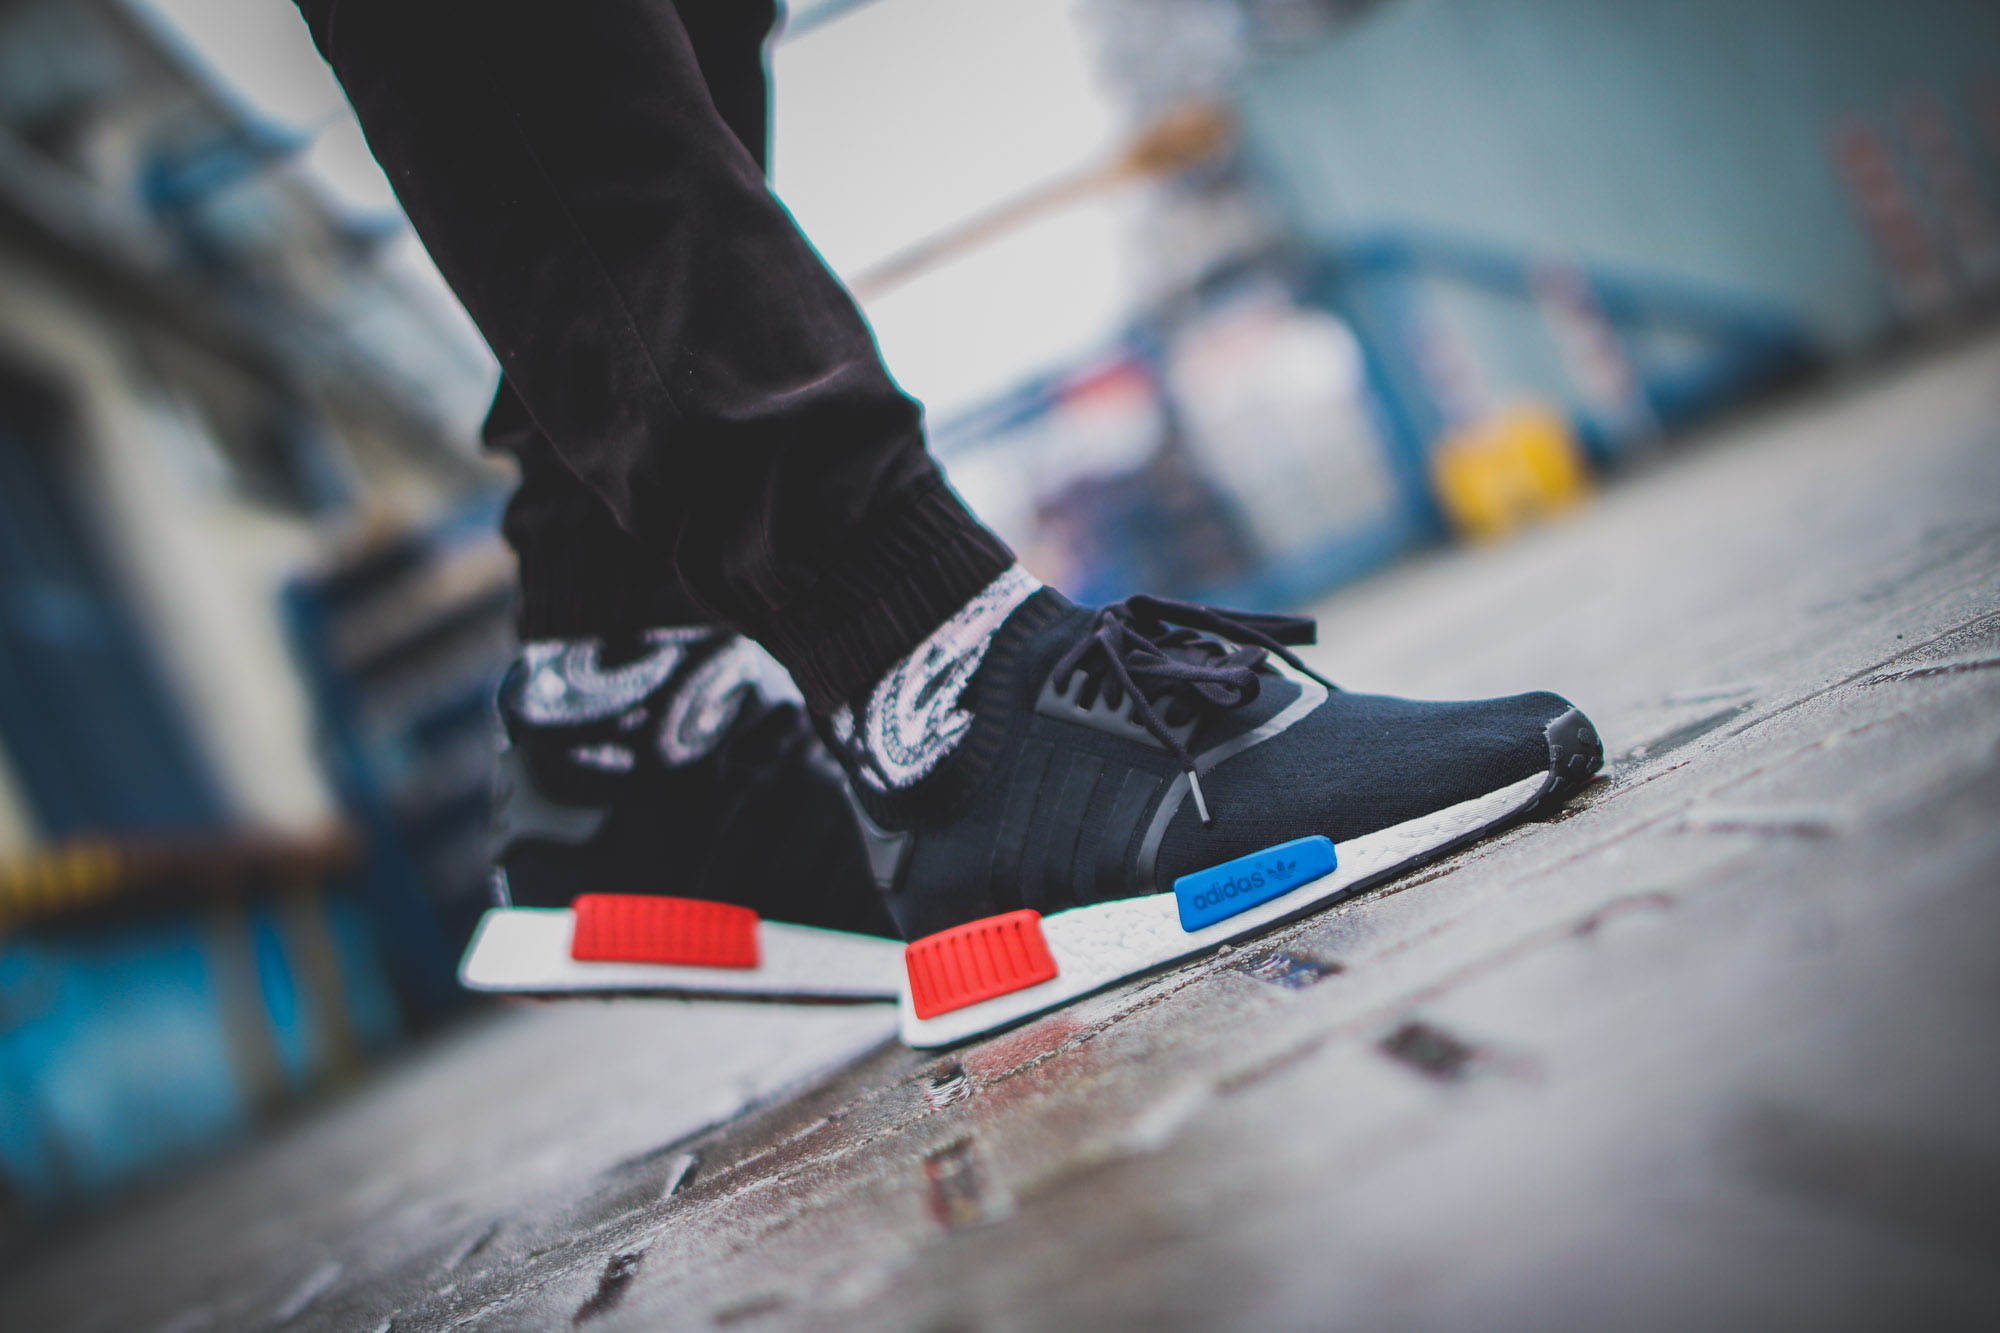 adidas nmd xr1 og in New South Wales Australia Free Local